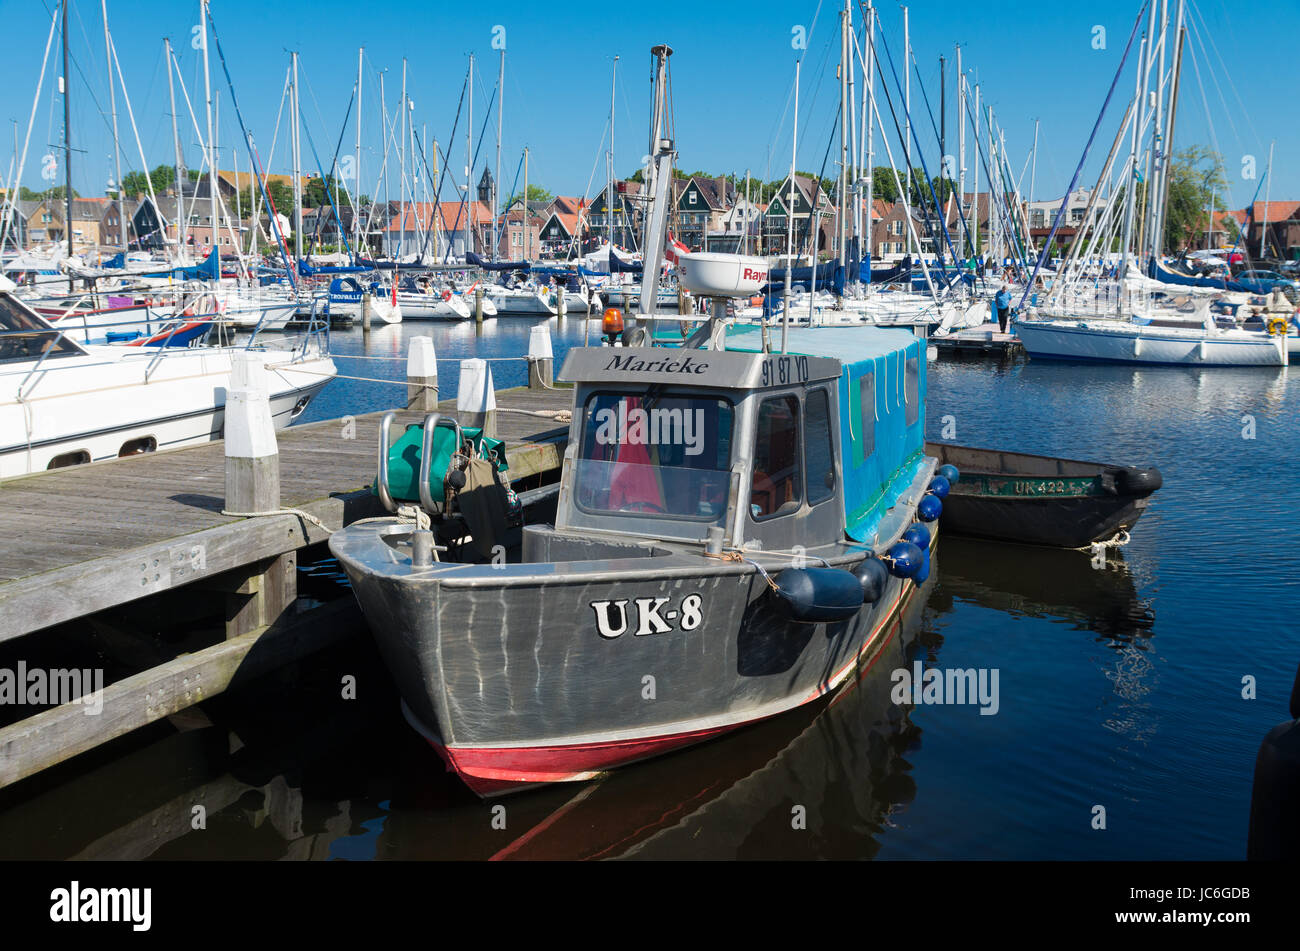 old fishing boat with Urker registration number. Urk has by far ...